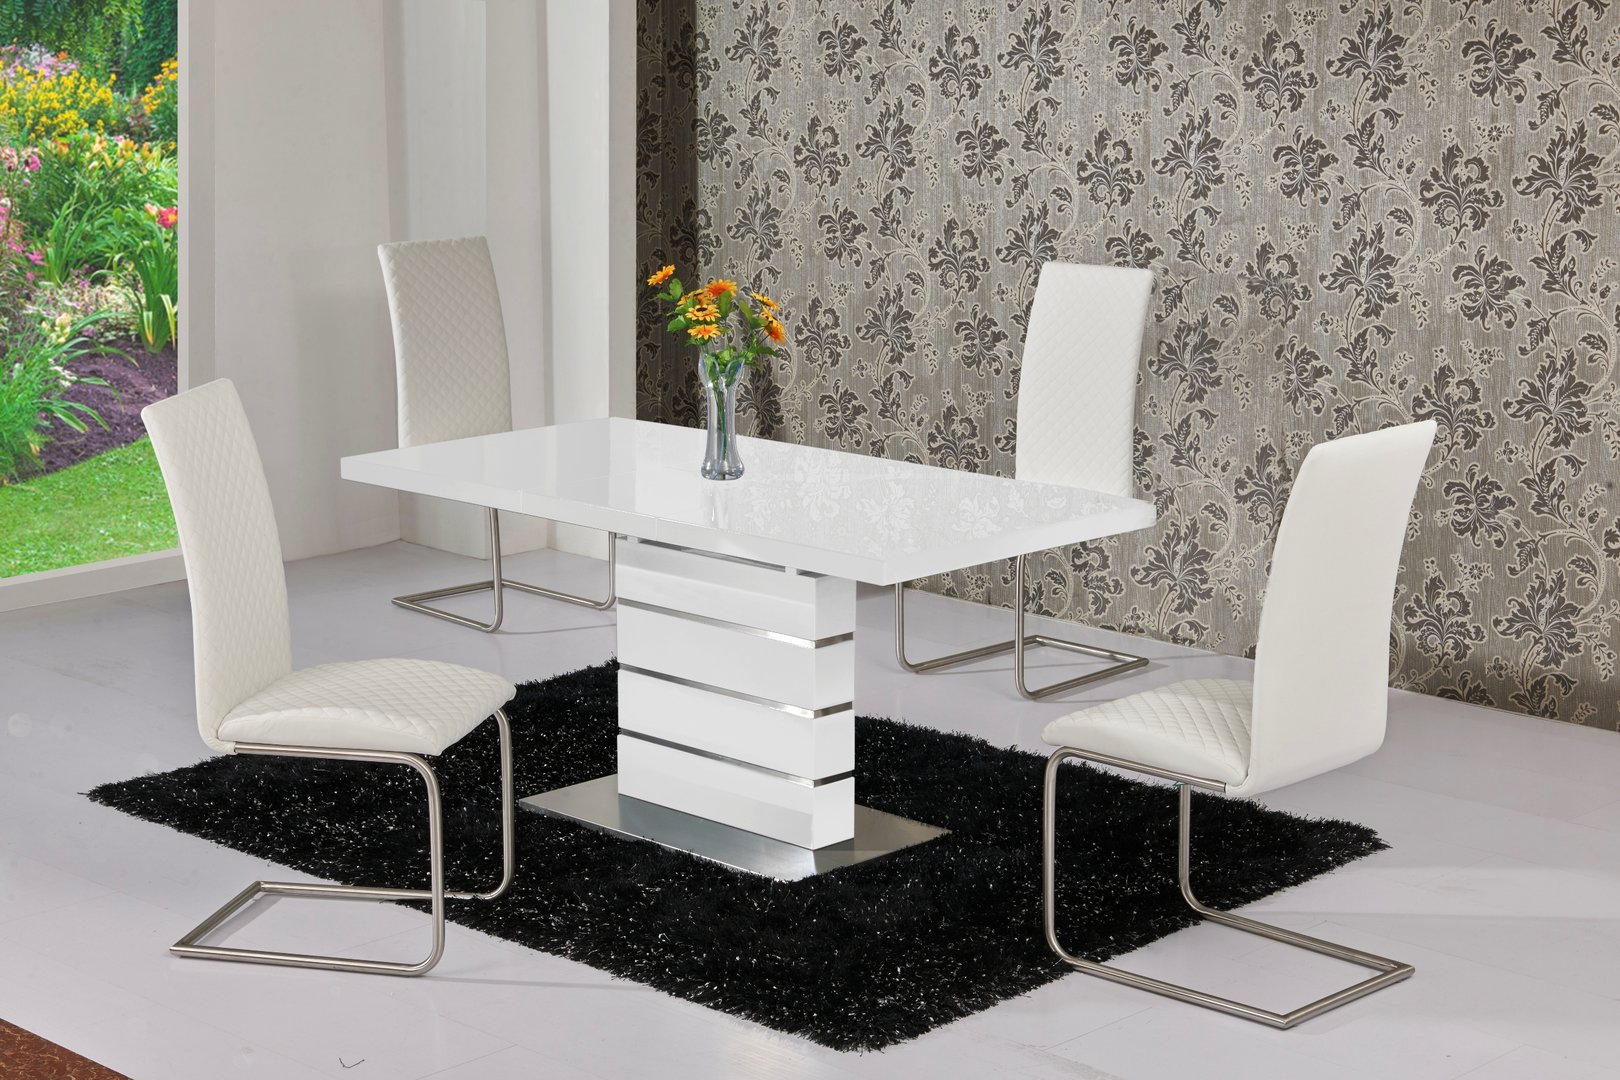 White Dining Table Set Extendable White High Gloss Dining Table And 6 White Chairs